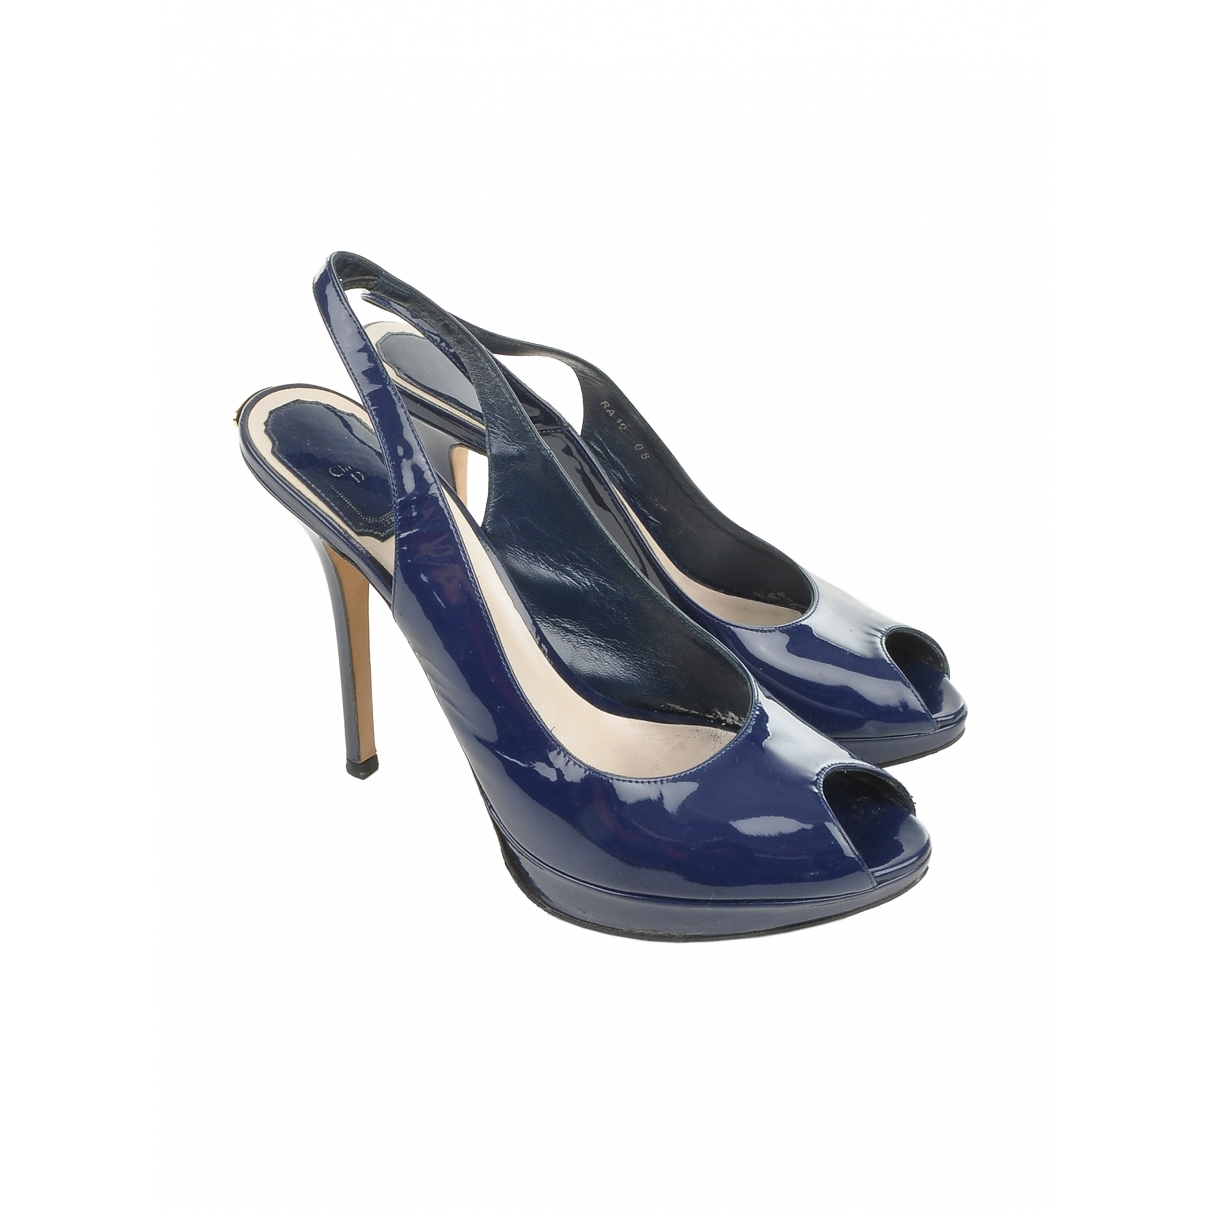 Dior \N Blue Patent leather Heels for Women 38 EU